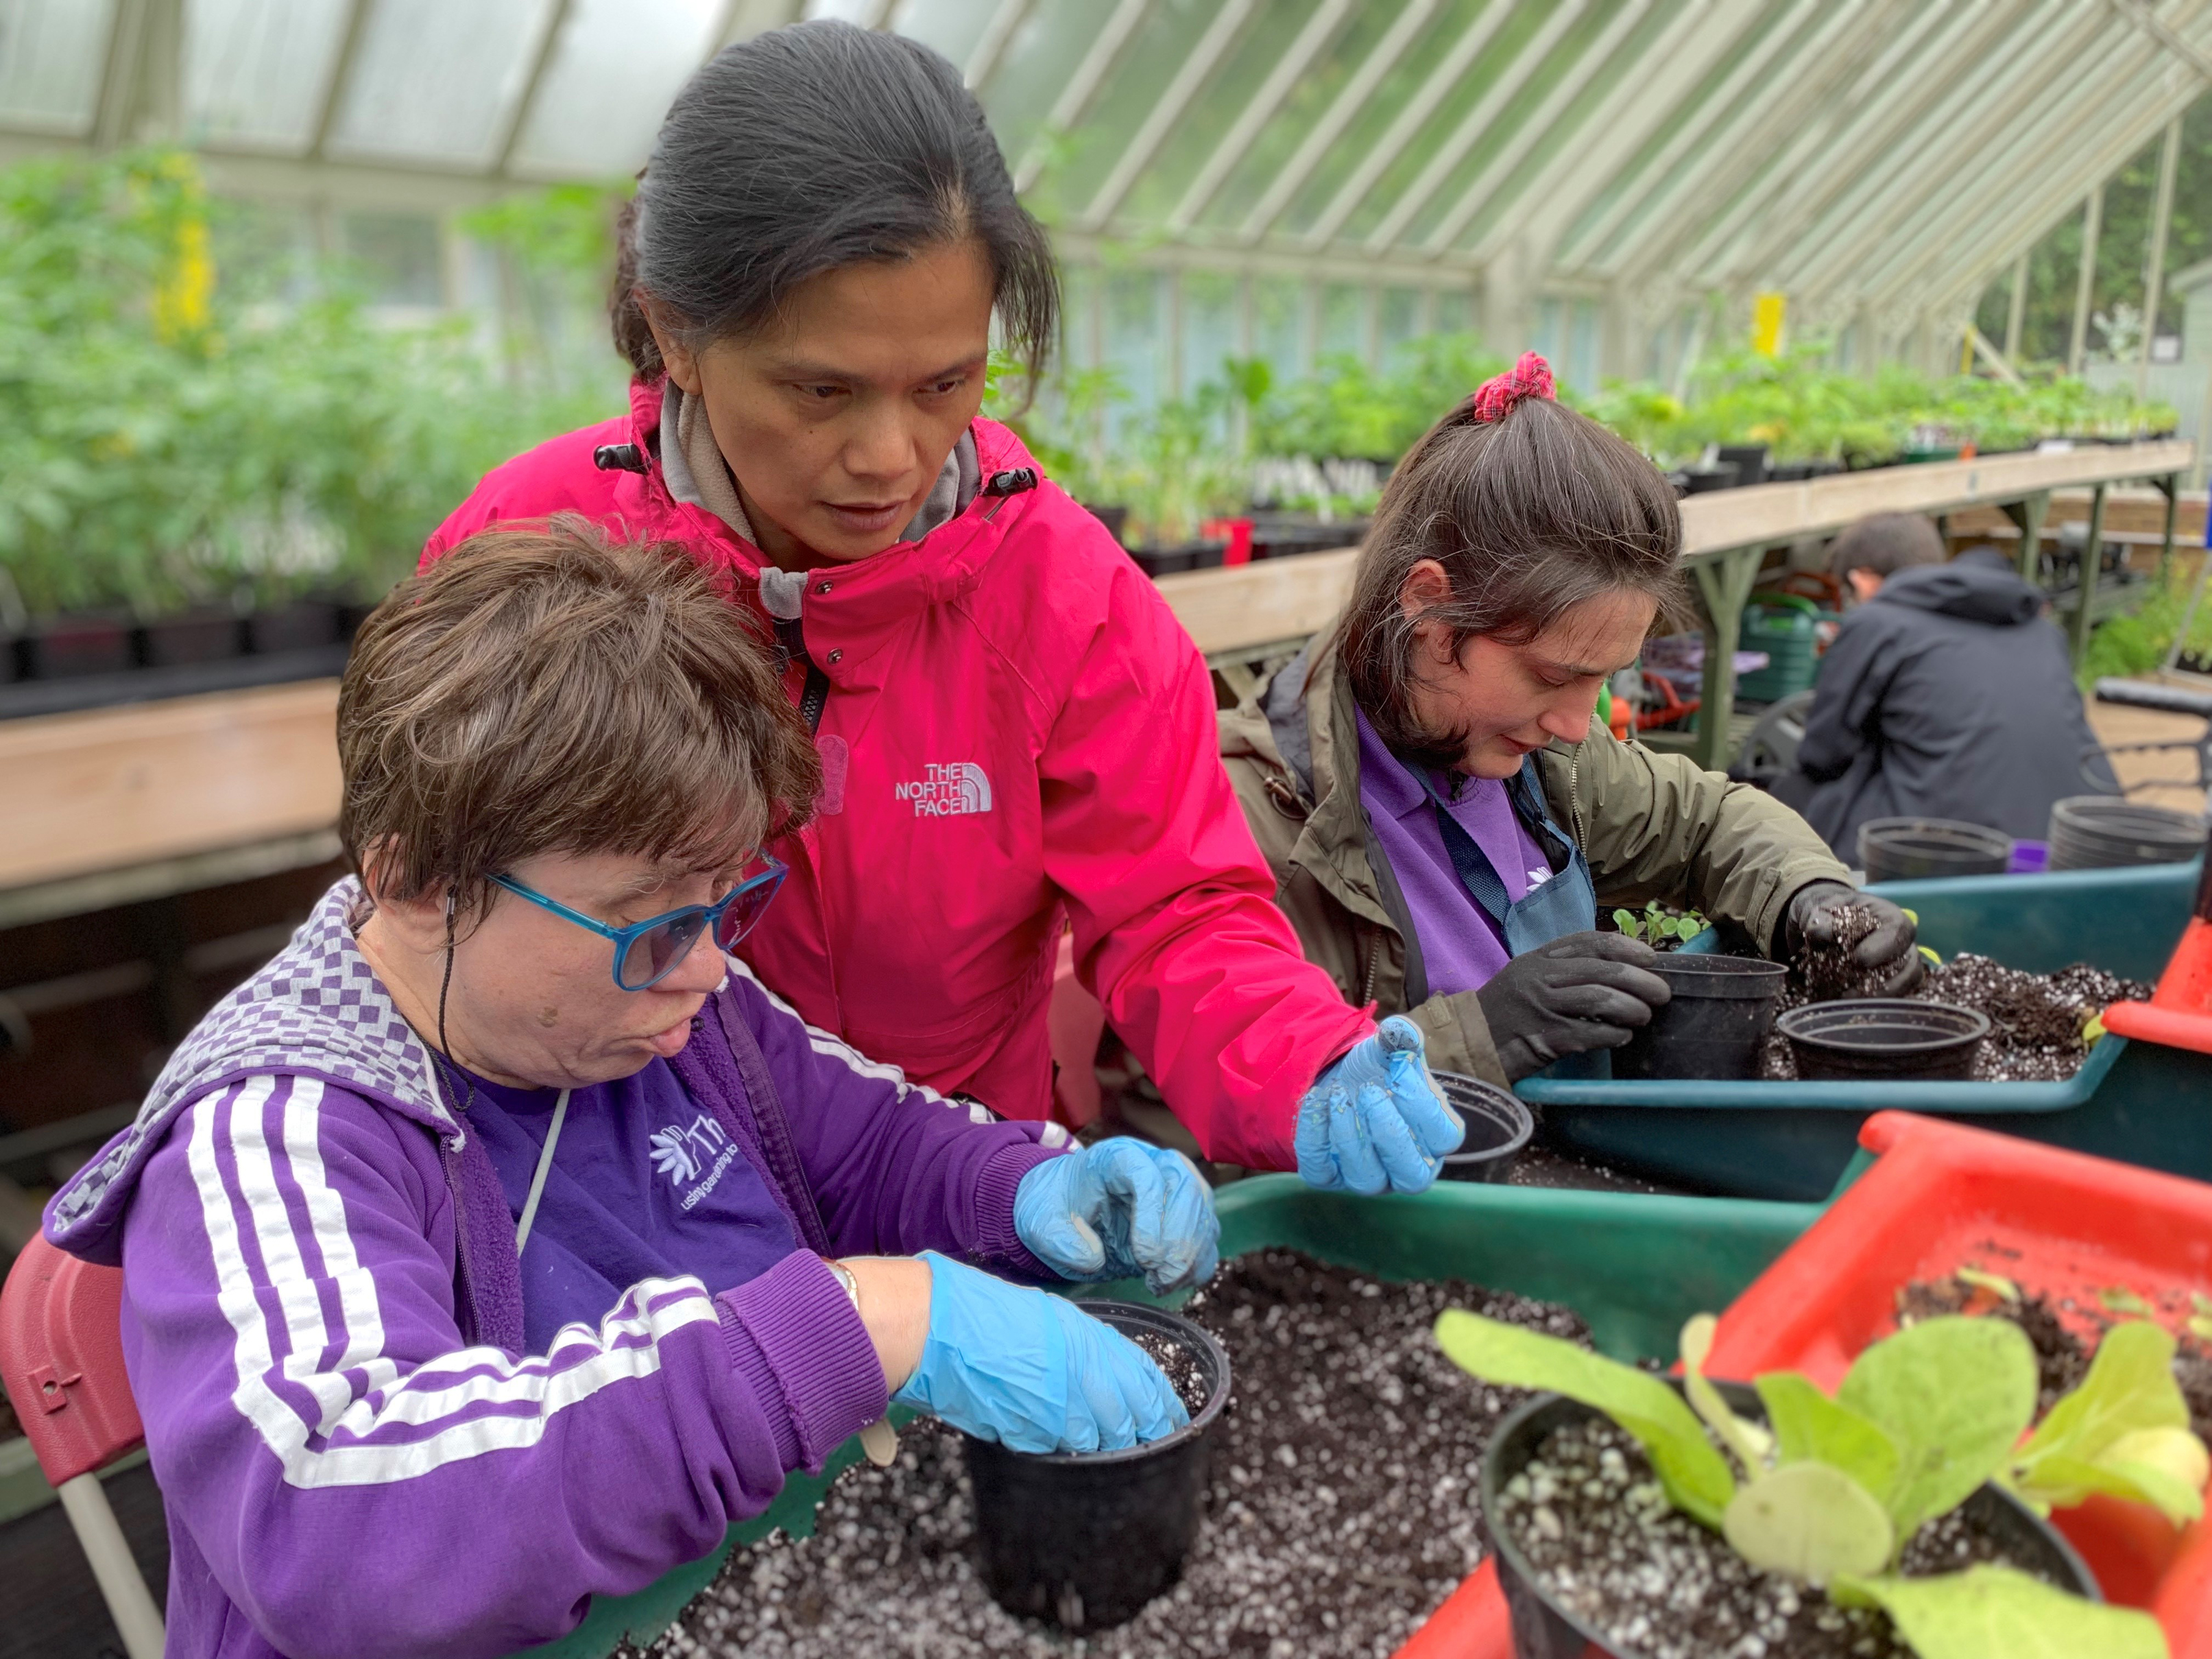 Horticultural therapy helps with both mental and physical health (Thrive/PA)